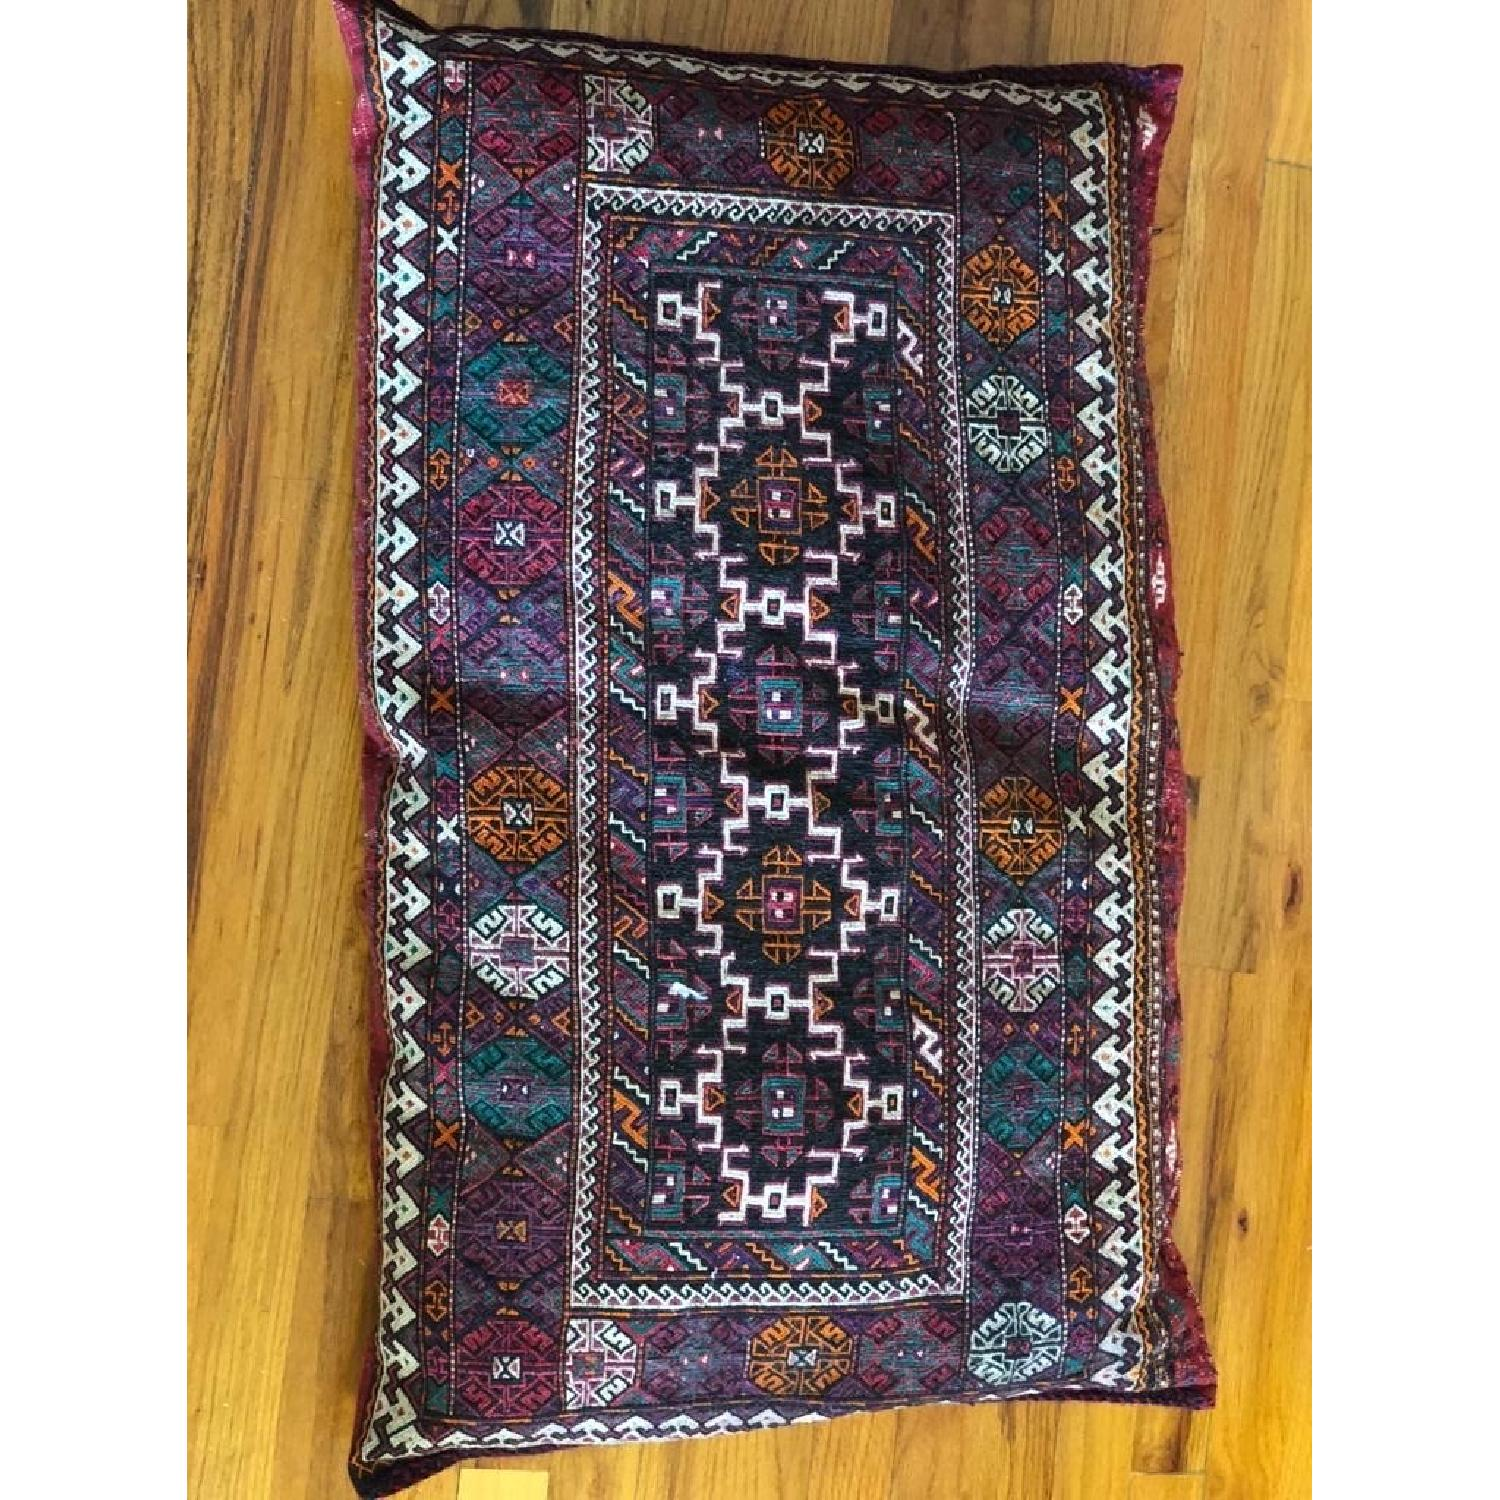 Persian Kilim Floor Pillows-1